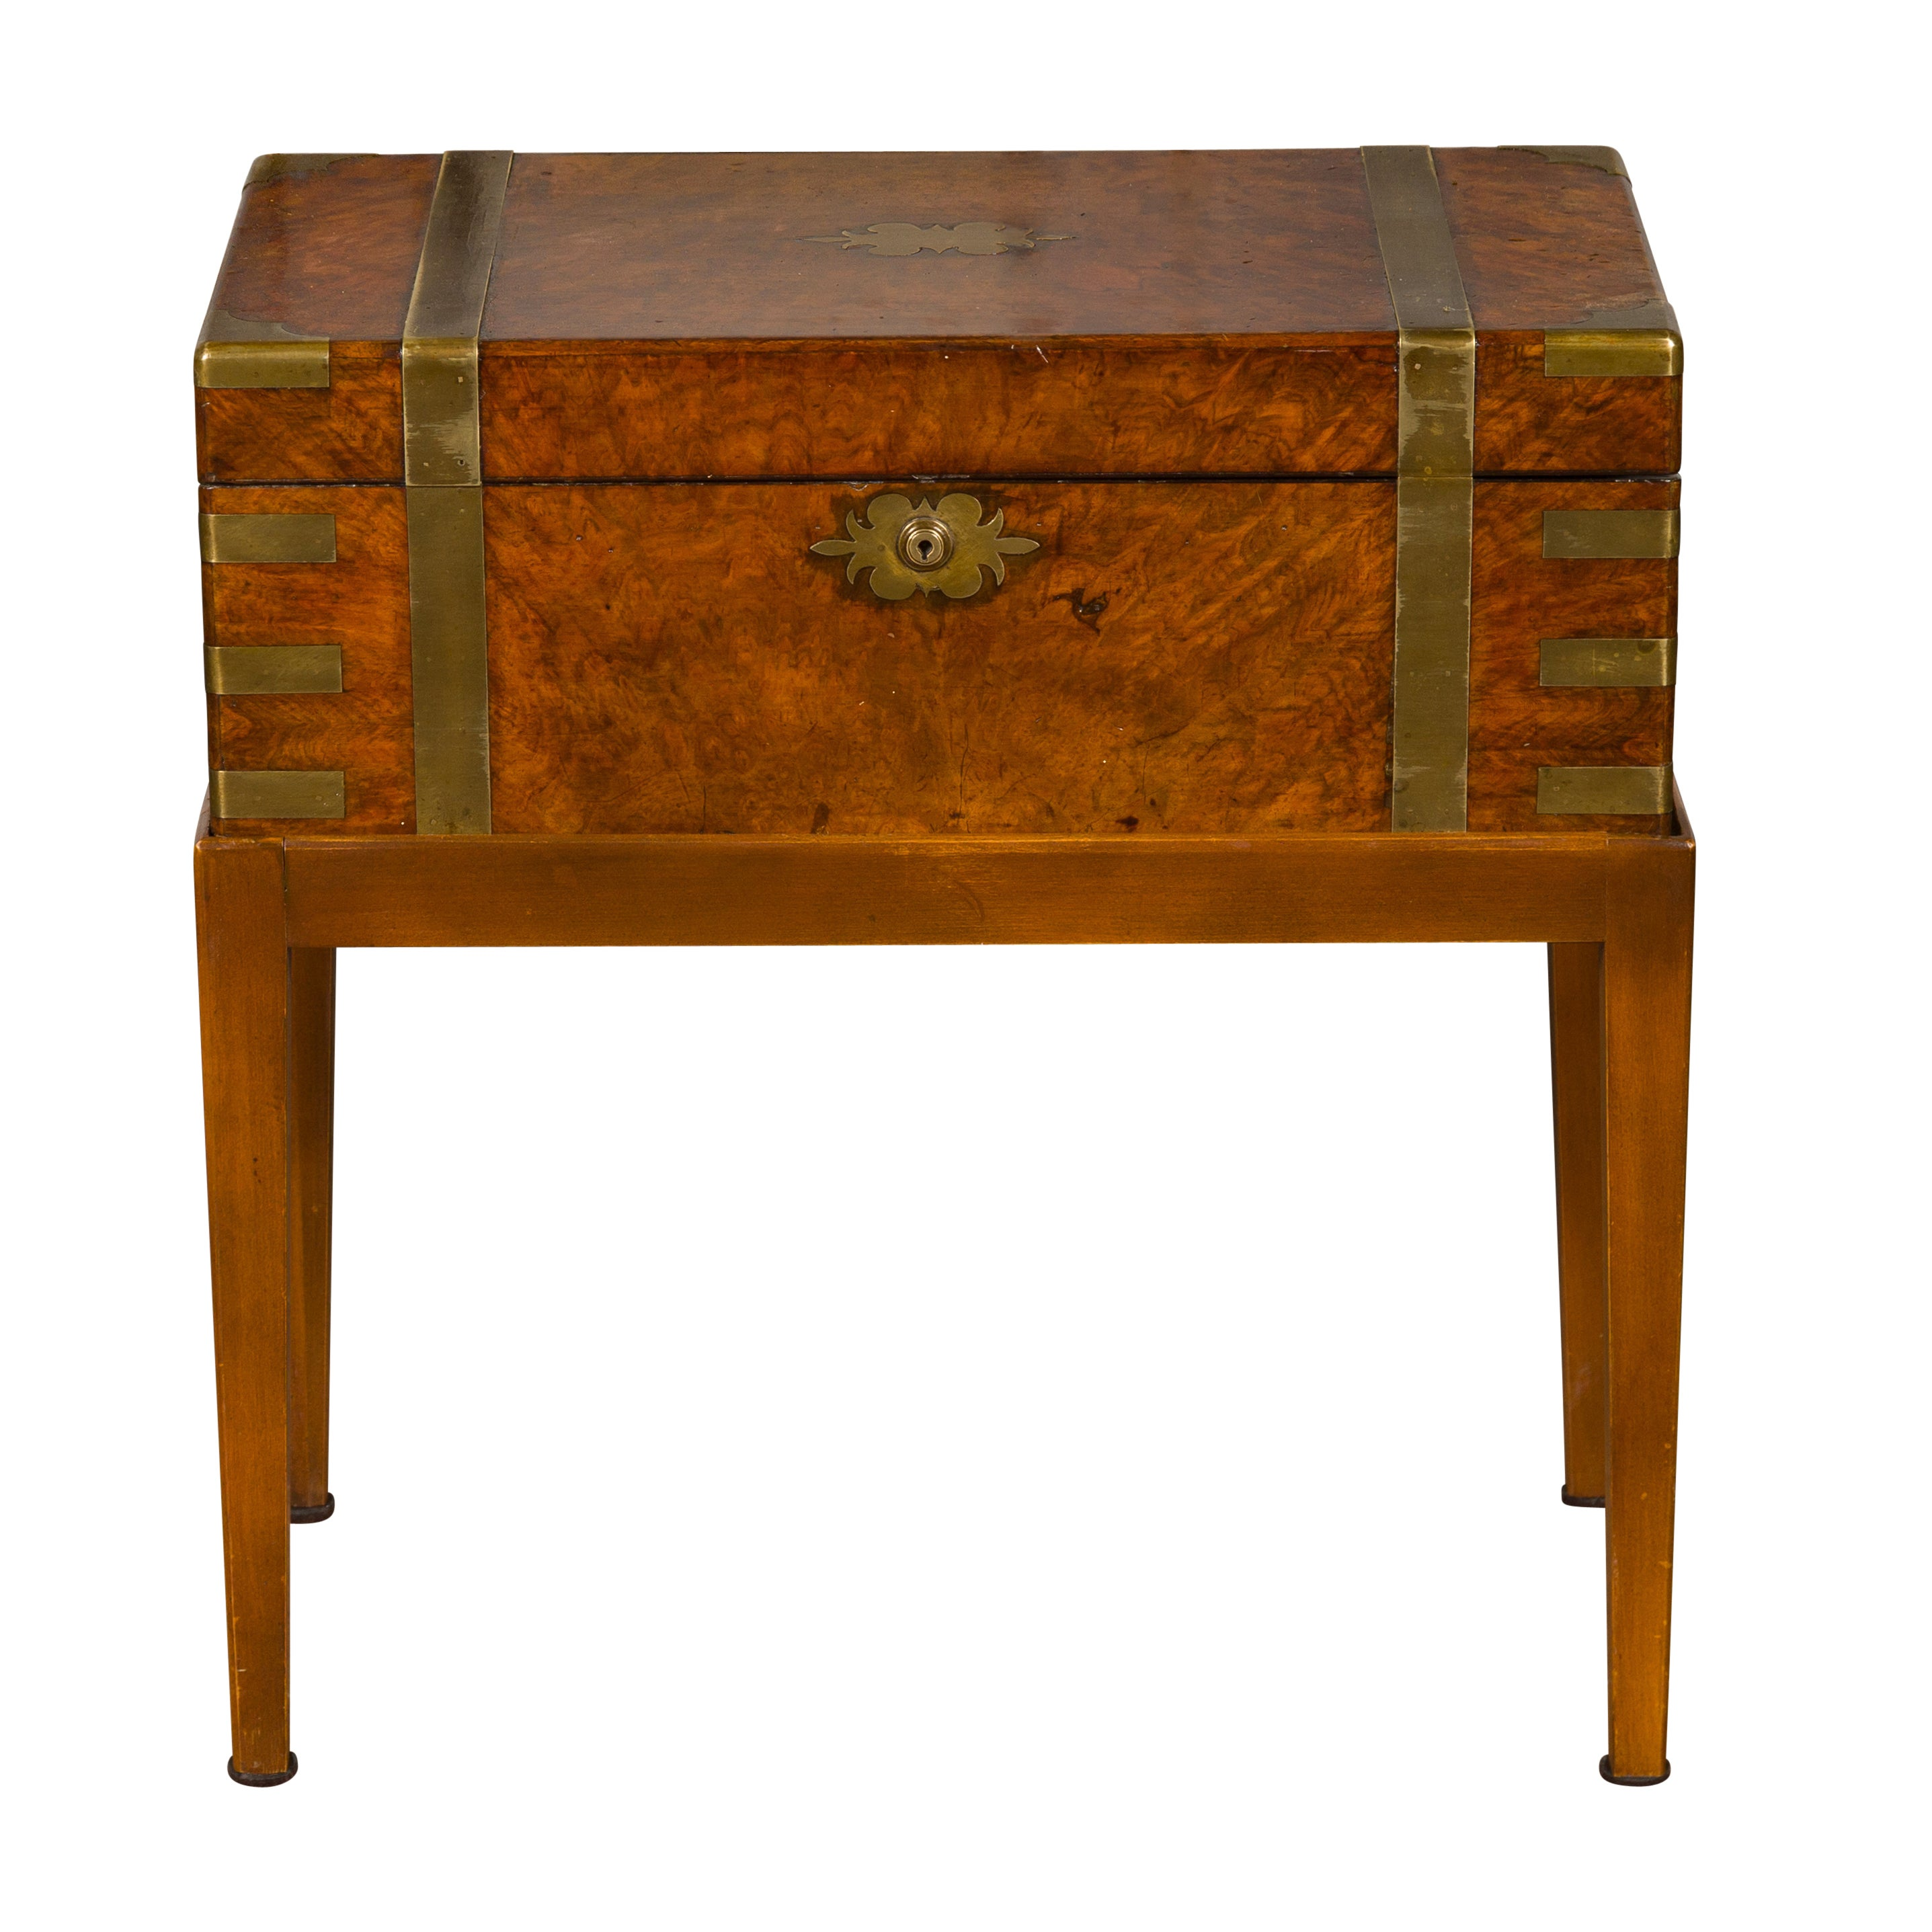 English 1850s Walnut Lap Desk Box on Custom Stand Fitted with Green Leather